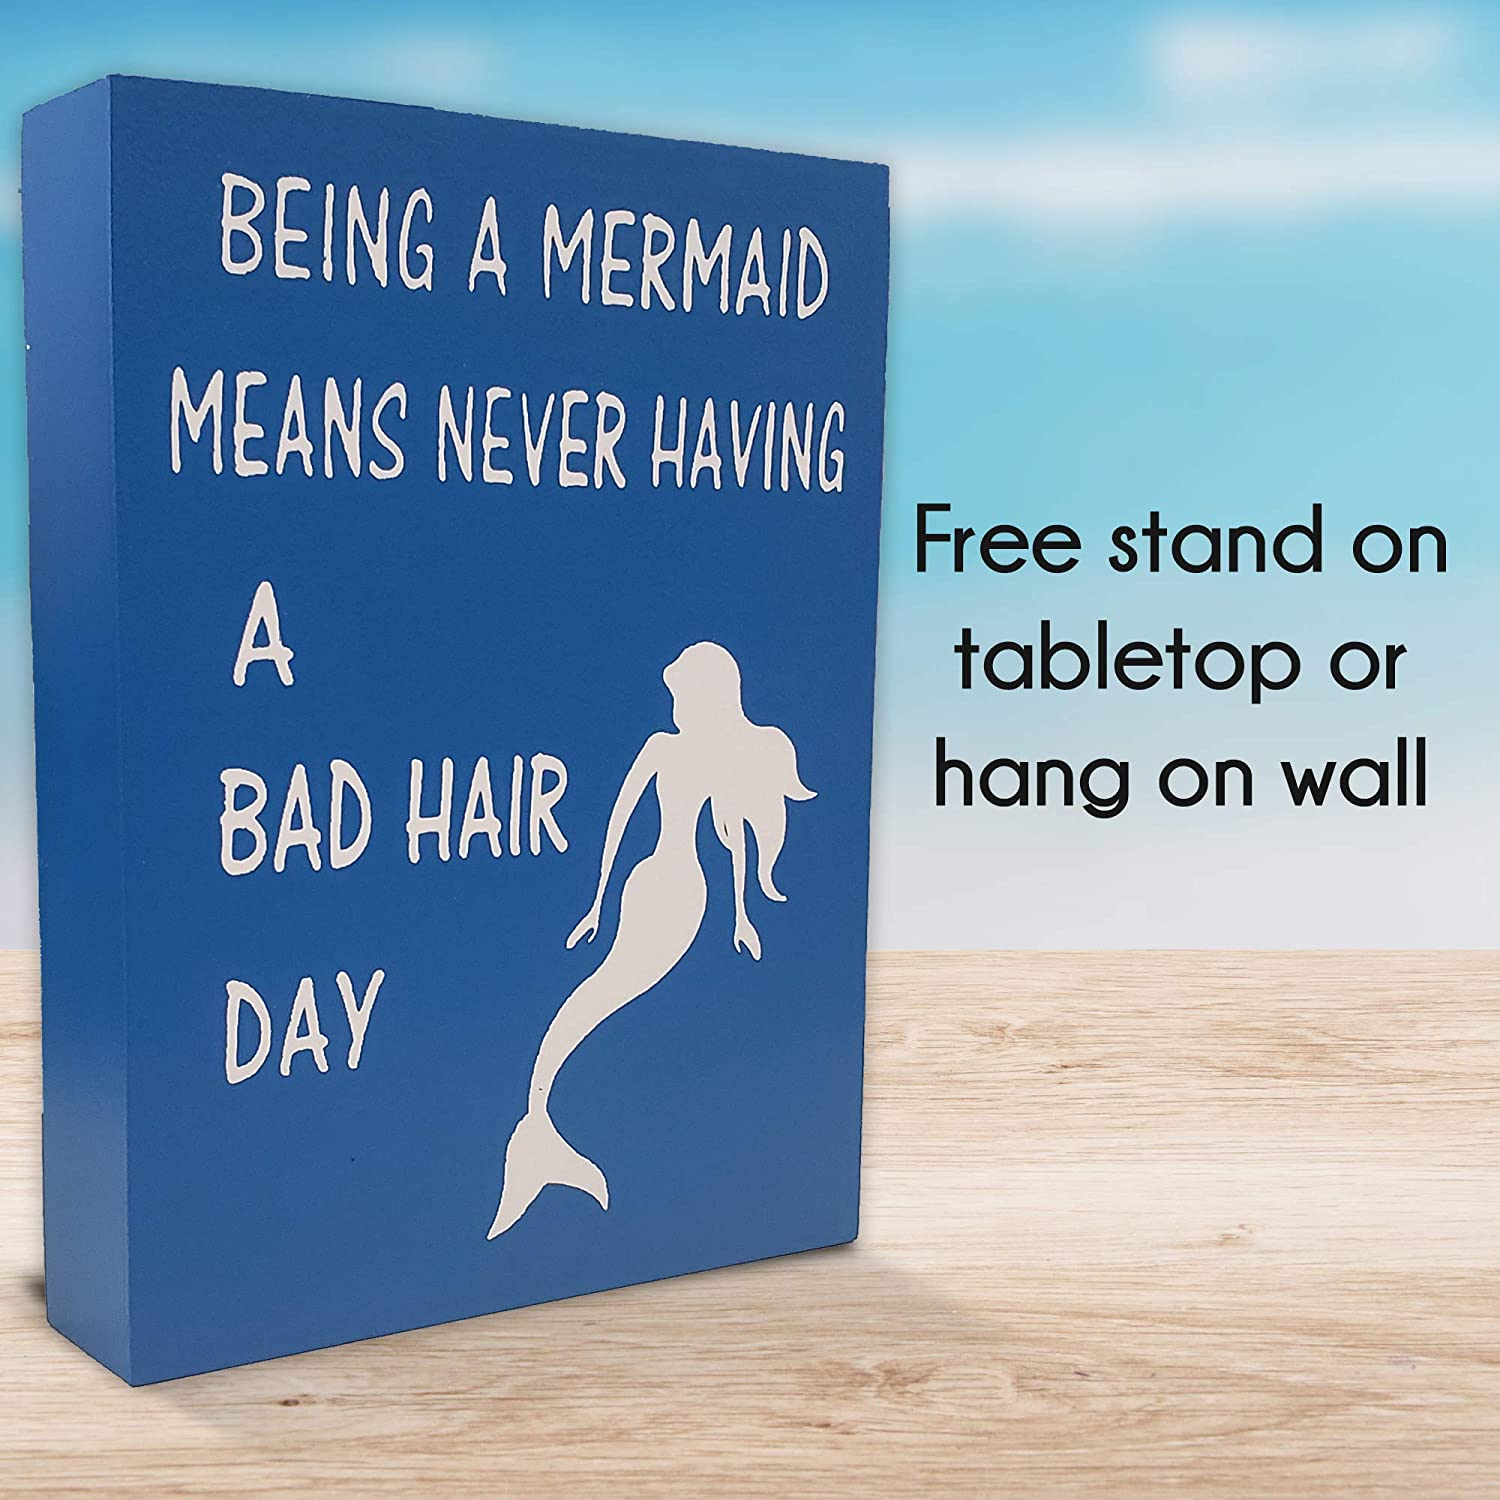 Beach House Decoration Being A Mermaid Means Never Having A Bad Hair Day Mermaid Saying for Wall Decor or Shelf JennyGems Mermaid Wooden Box Sign